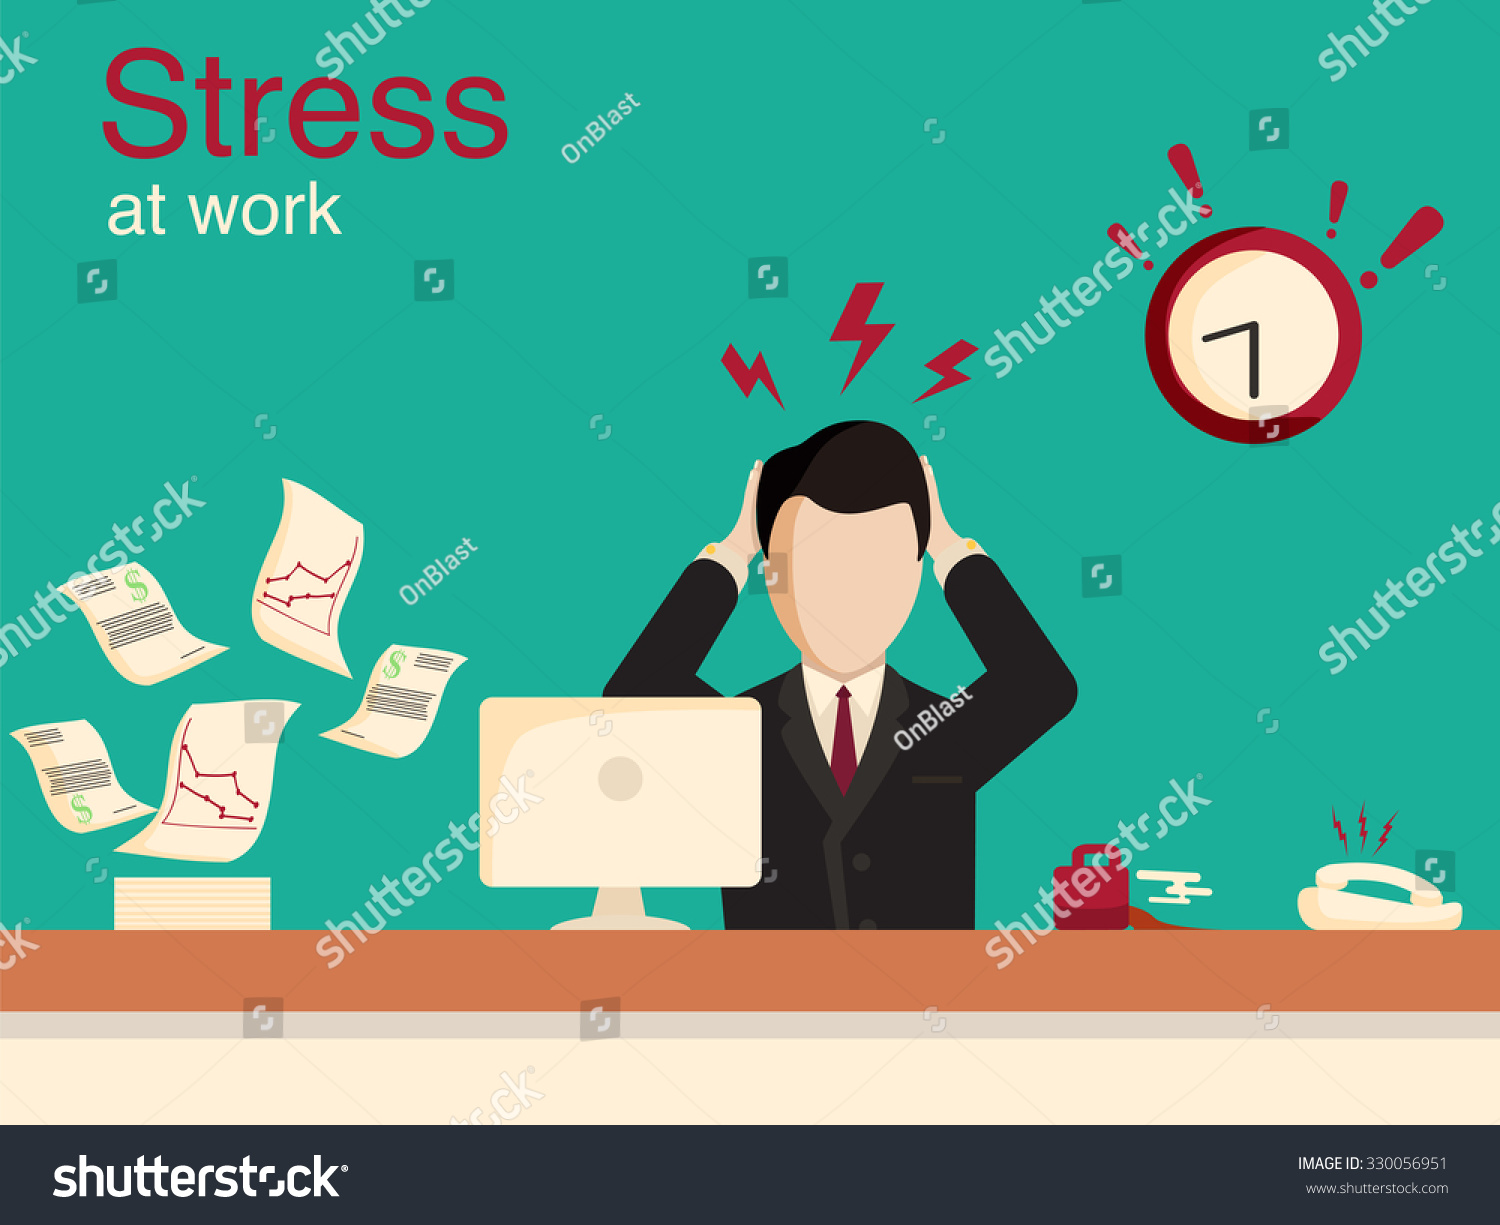 new job stress work info graphic stock vector shutterstock new job stress work info graphic stress on work office life and business man